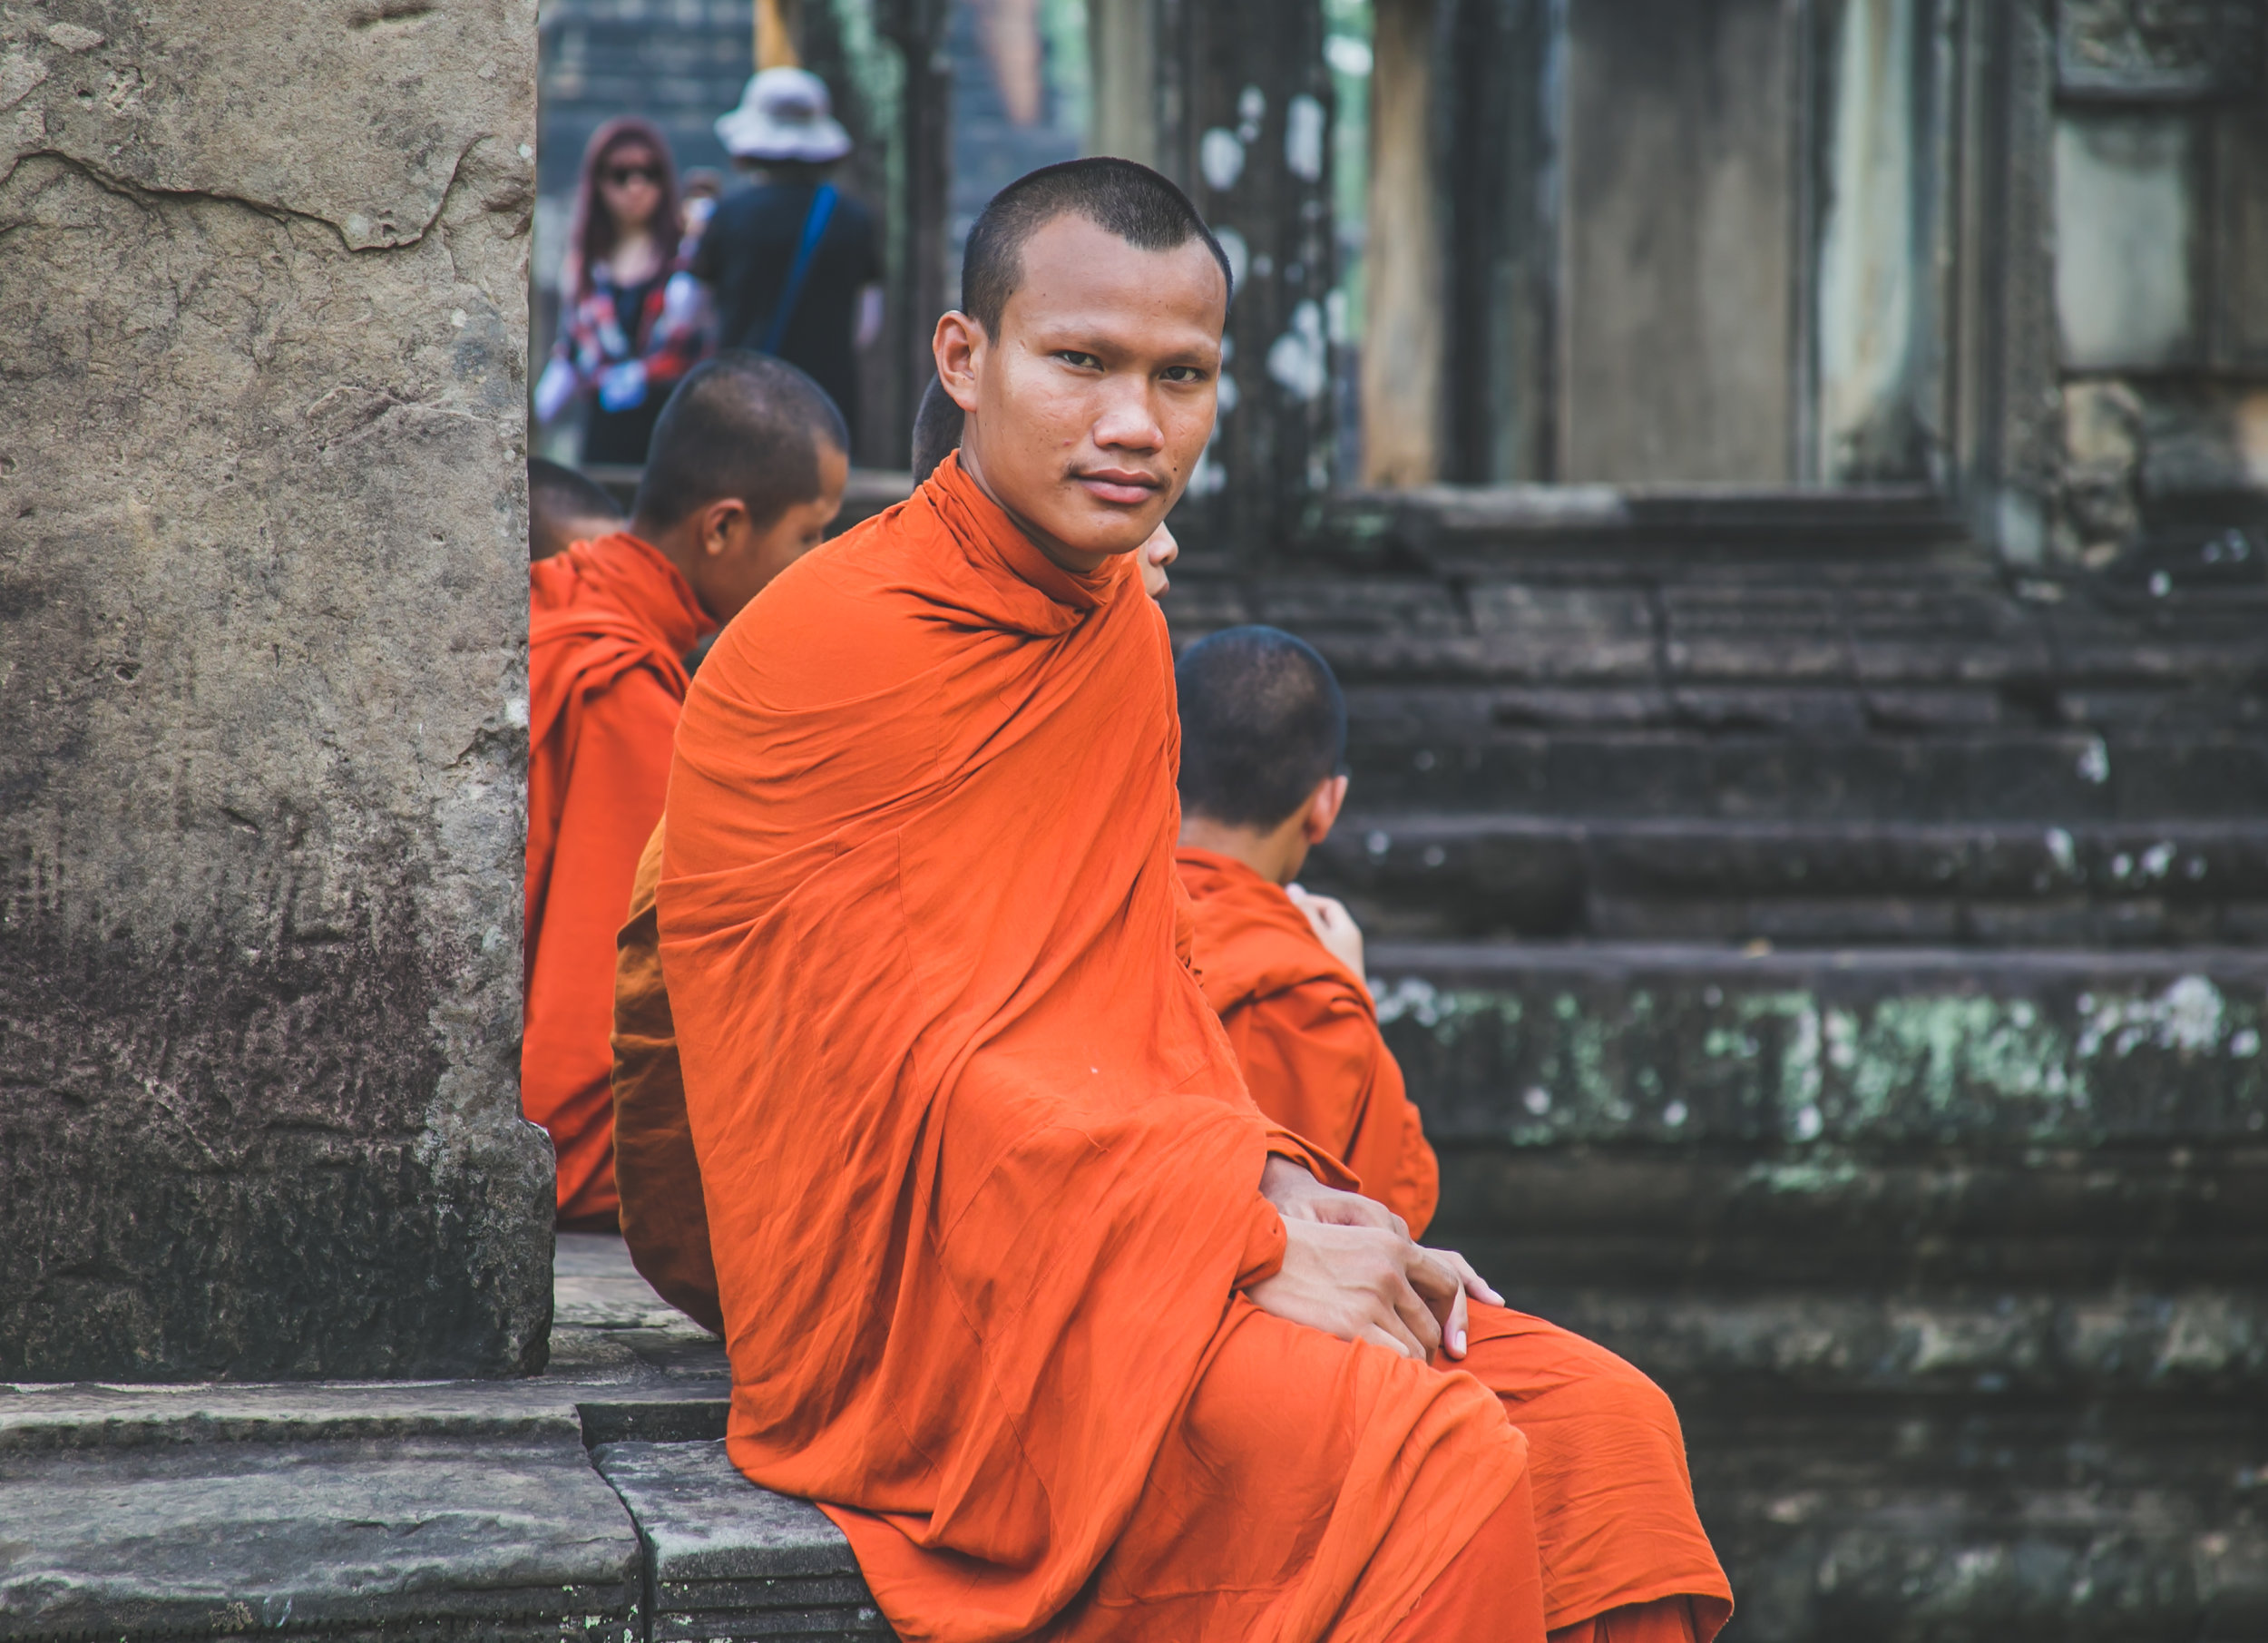 Unlike Thai monks, Cambodian boys like Yun can start practicing as early as age 6 - becoming an ordained monk at 20. Buddhist monks occupy their own social class in Cambodia. They are pillars in the community, and participate in festivals, religious ceremonies, marriages, and funerals.  Each village has a spiritual center, or wat, where 5-70 monks reside depending on the town's population. Woman are also permitted to become nuns at an older age - often after becoming widowed. They shave their head and eyebrows, live with the monks, and play an important role in the wat's daily happenings. Together these revered individuals service Cambodia's 95% Buddhist population.